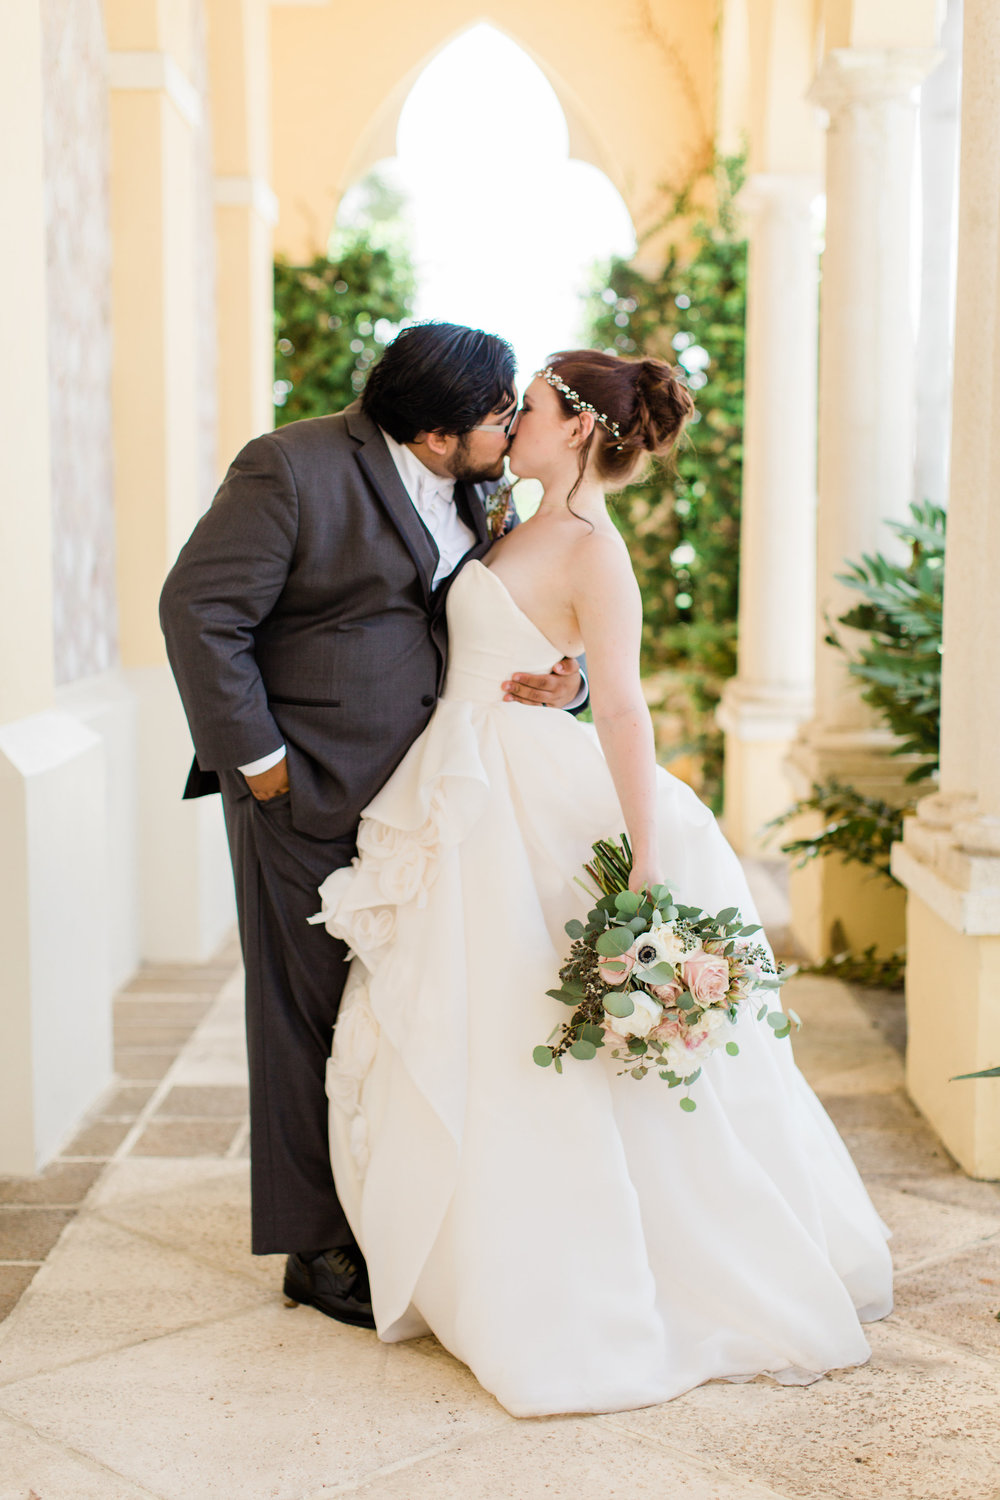 Classic Wedding Portrait at The Addison, Boca Raton Wedding Planning by Fleeting Elegance